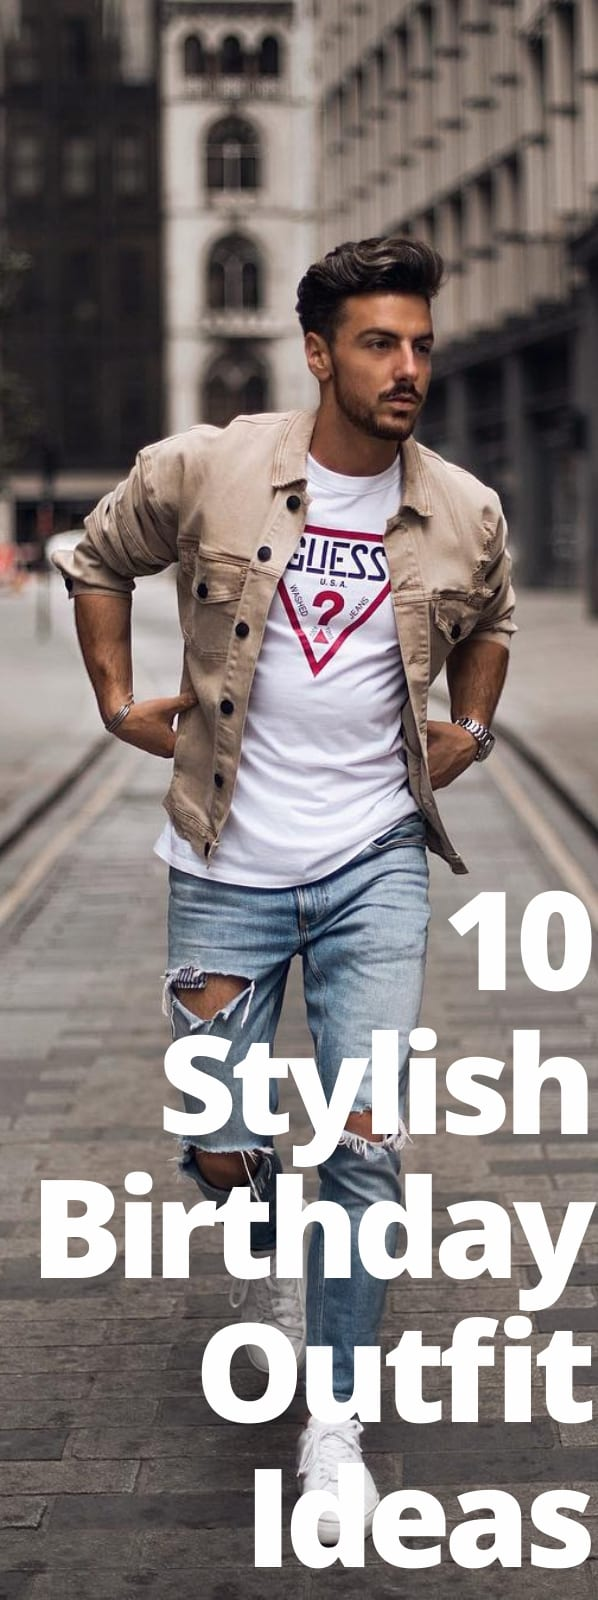 10 Stylish Birthday Outfit Ideas For Men